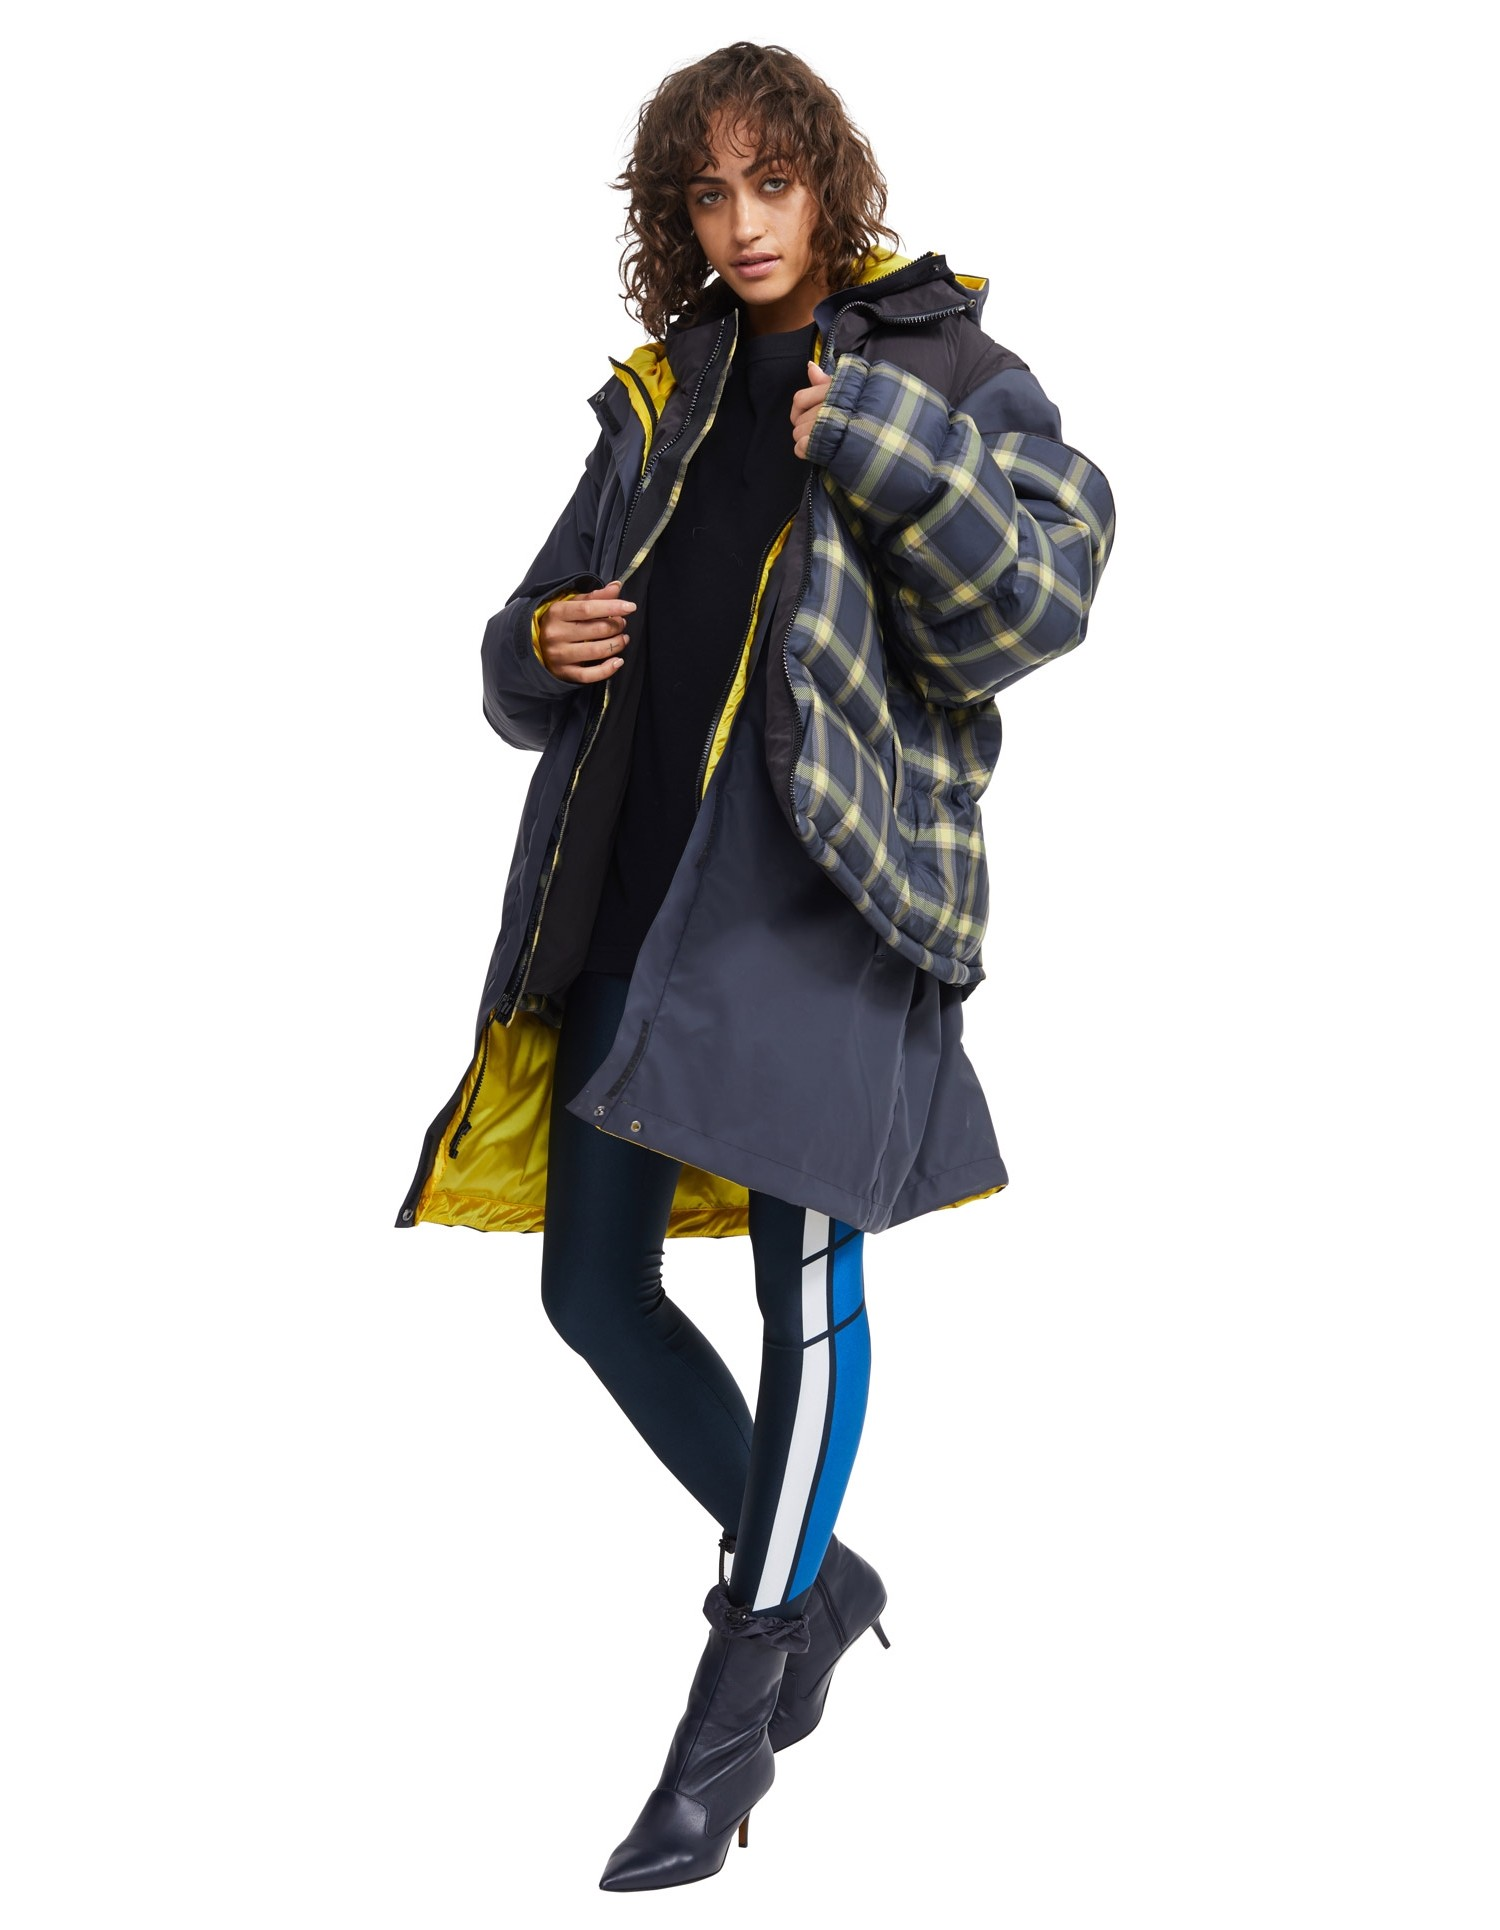 MONSE Plaid Puffer on Model Side View